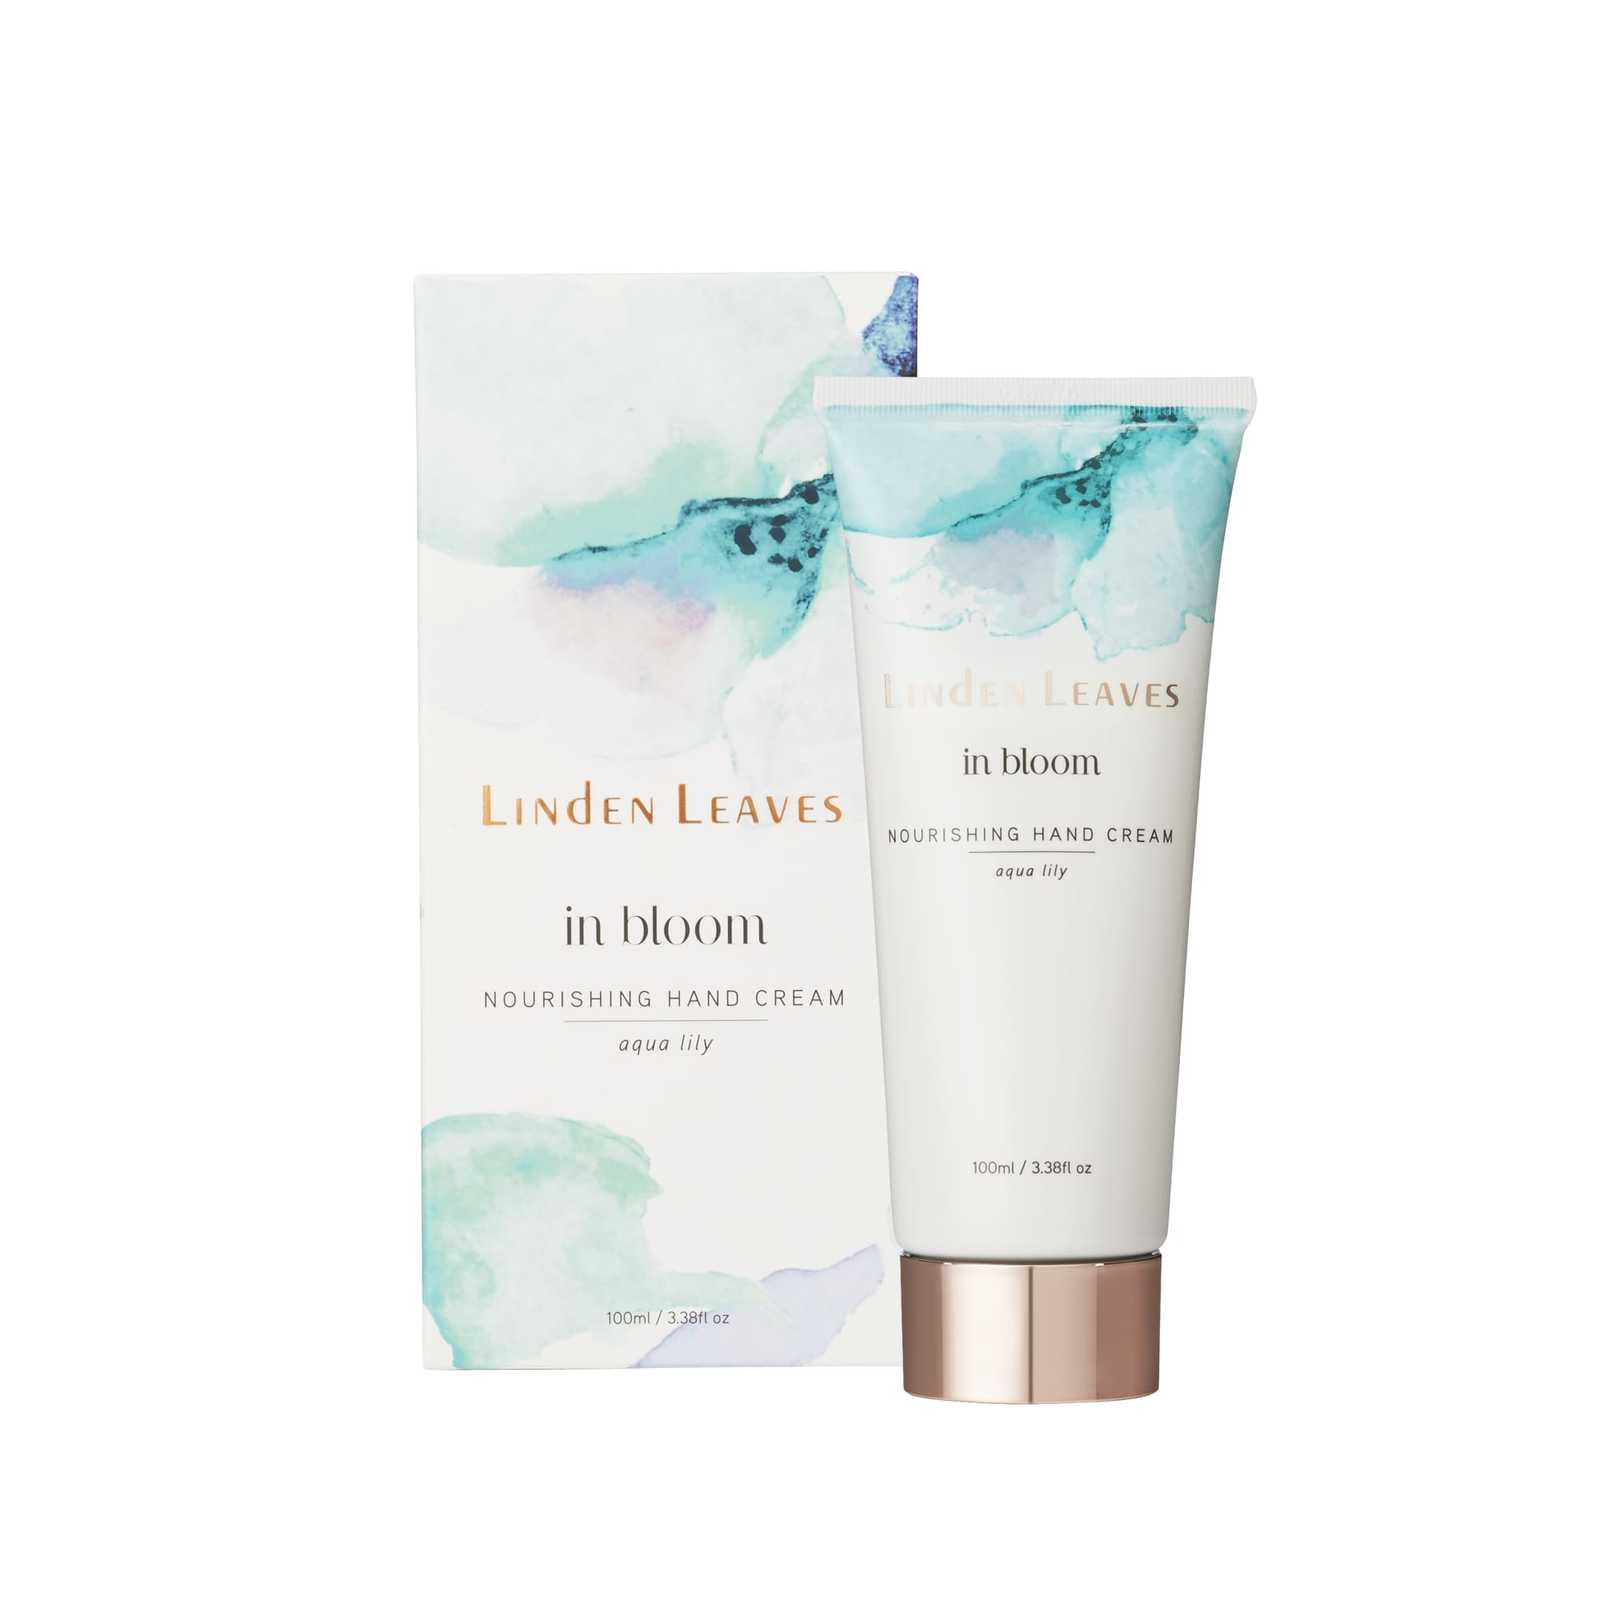 Linden Leaves: In Bloom Nourishing Hand Cream - Aqua Lily (100ml)